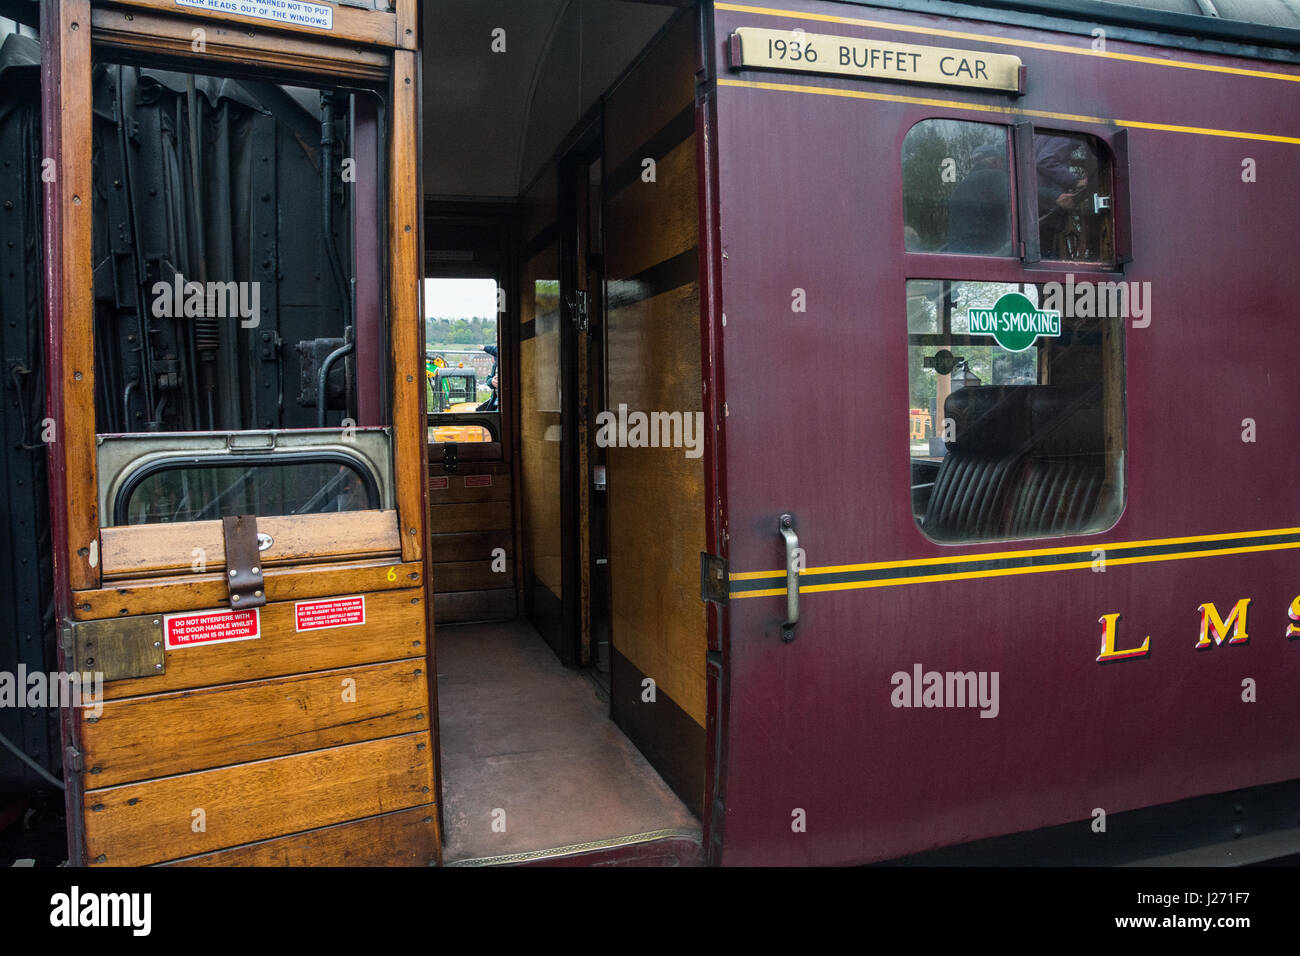 Carriages on The Royal Scot steam train, Bridgnorth Railway Station, Shropshire, West Midlands, UK. - Stock Image